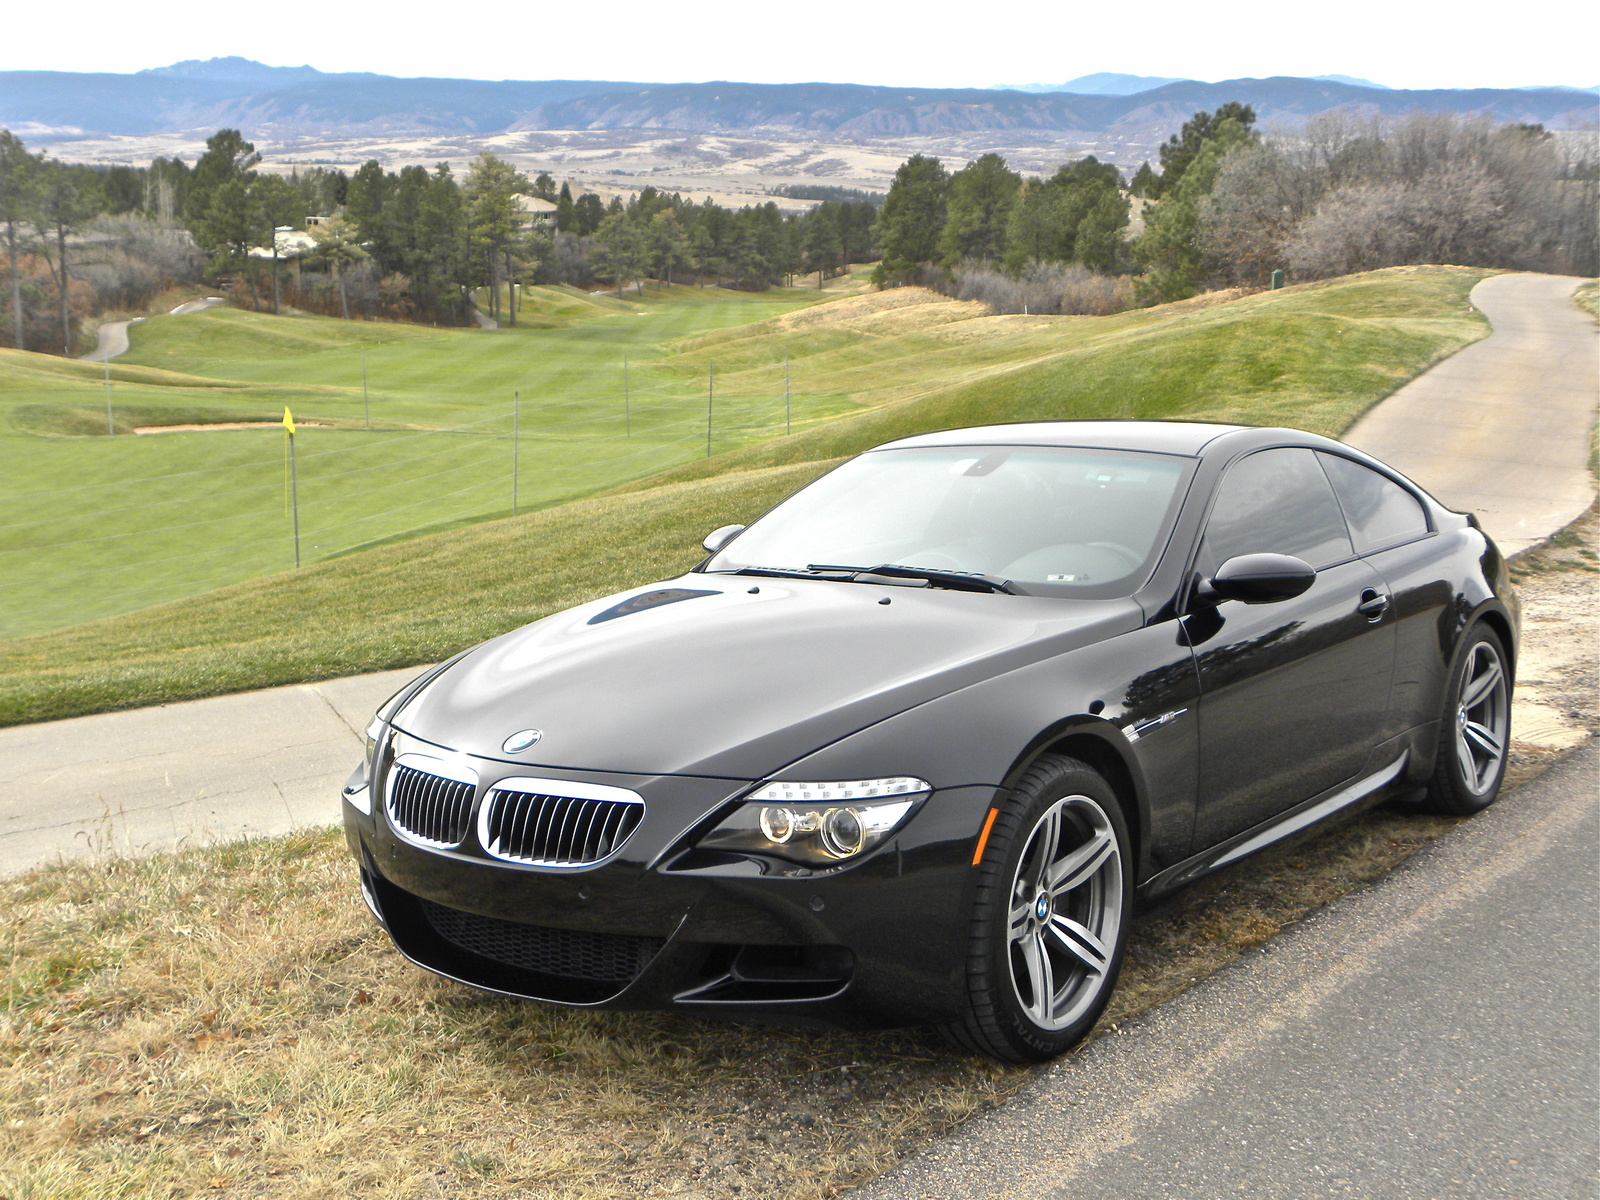 service manual 2008 bmw m6 power steering step by step. Black Bedroom Furniture Sets. Home Design Ideas